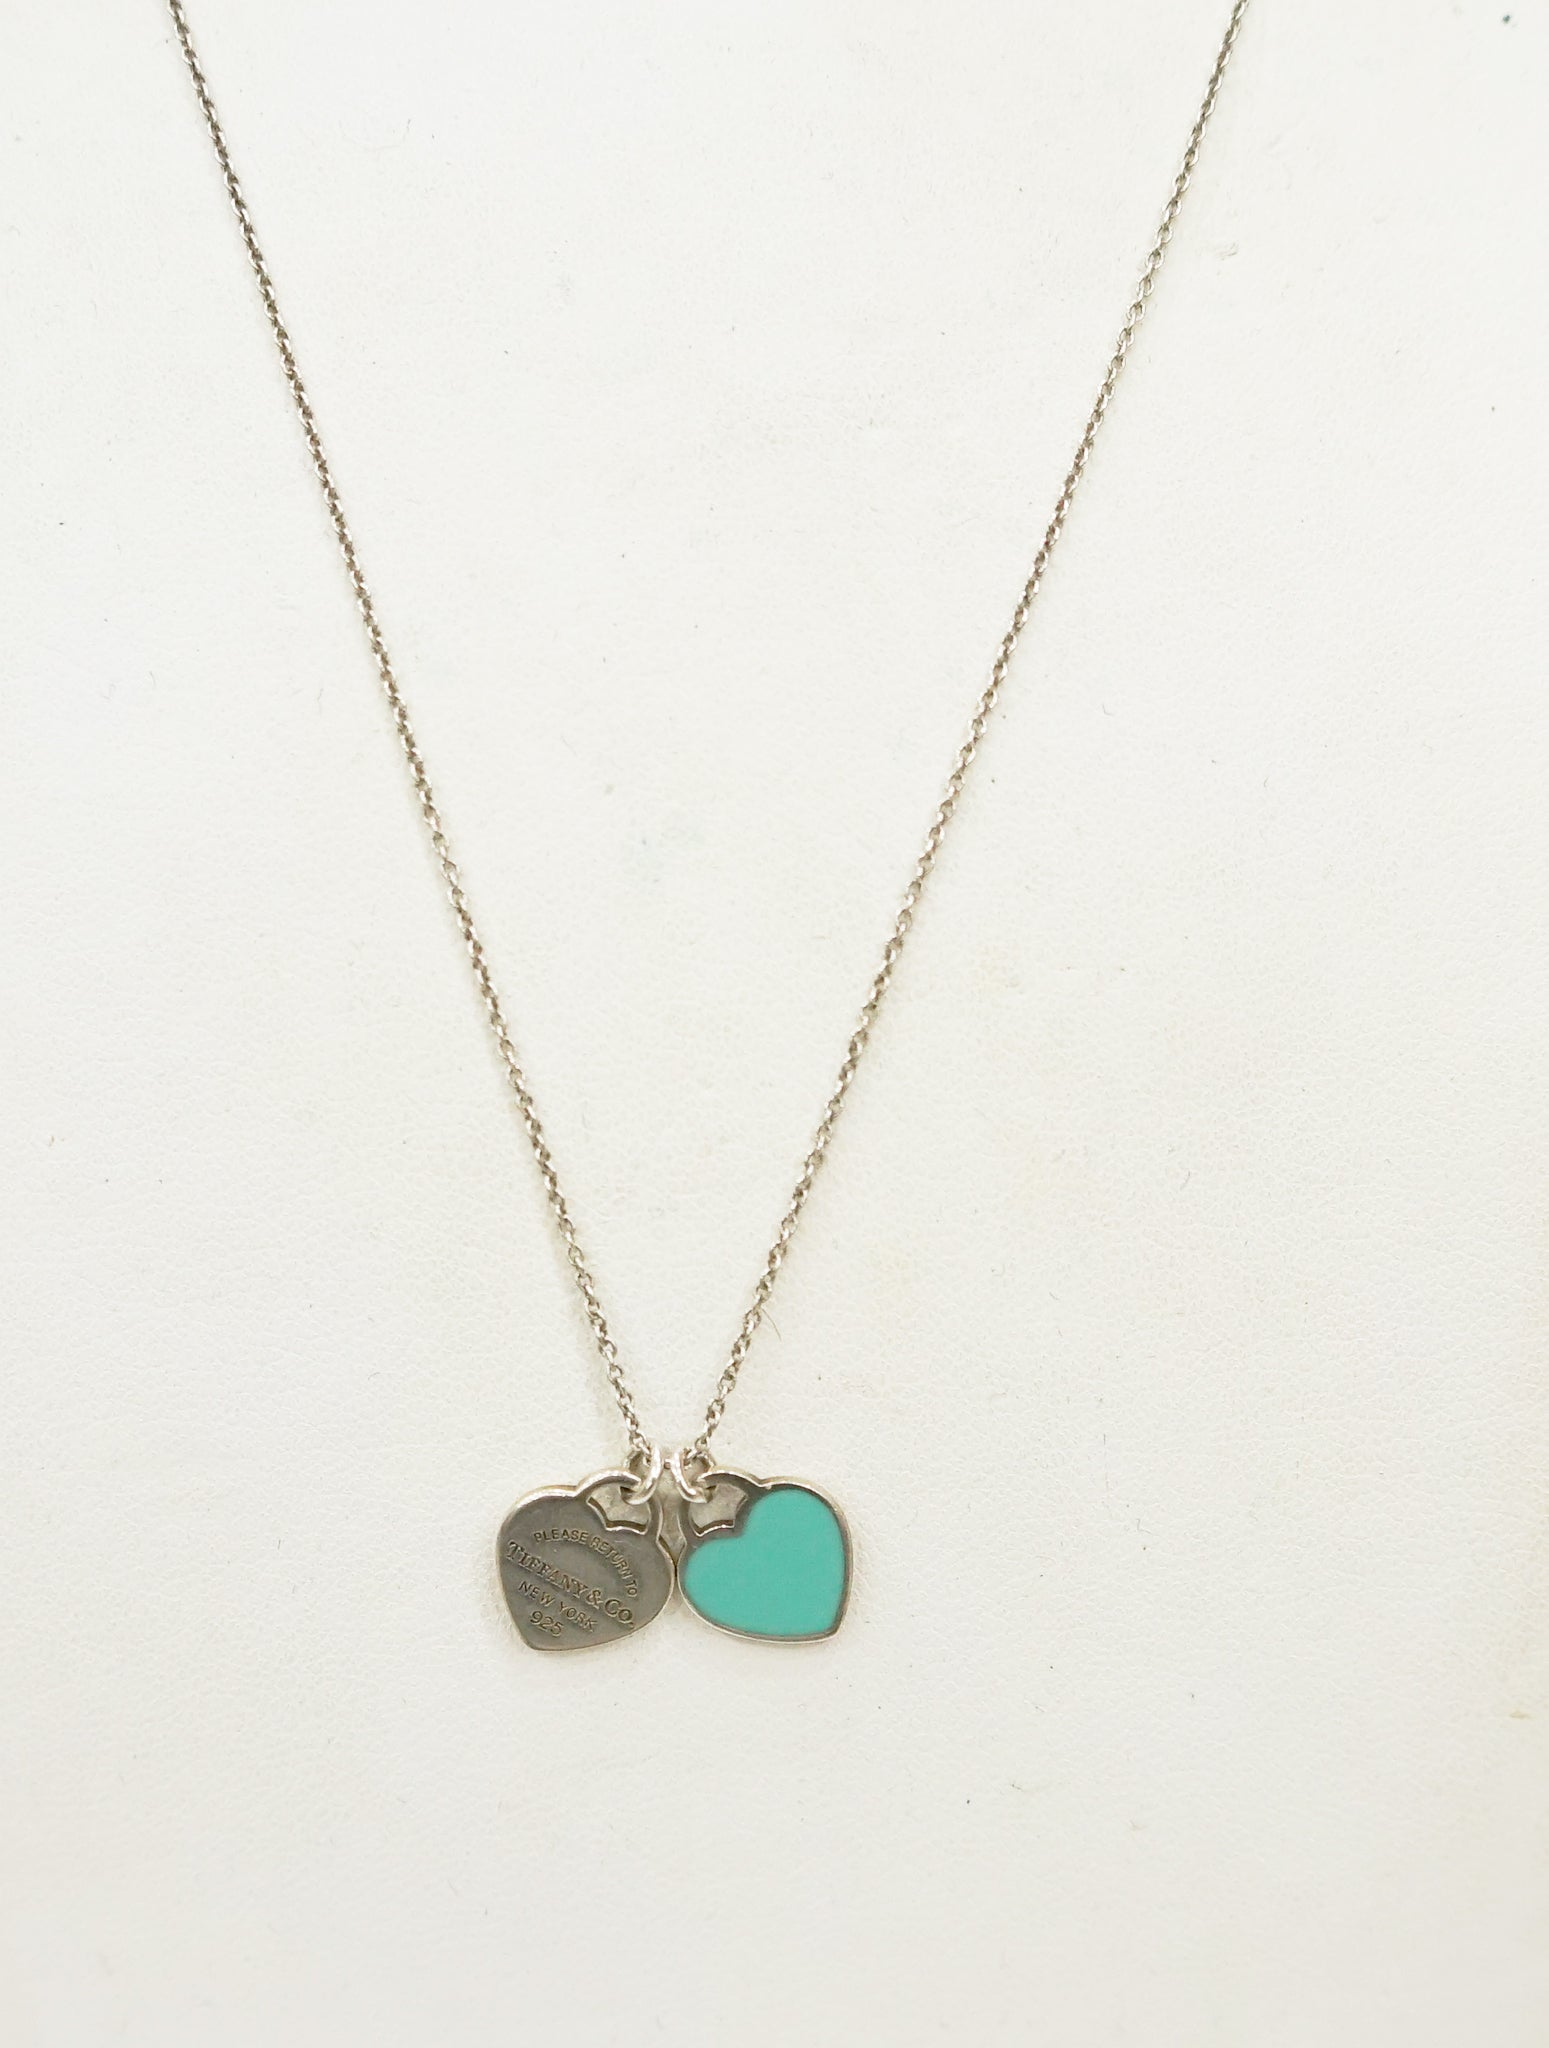 DOUBLE HEART TAGS SILVER CHAIN NECKLACE